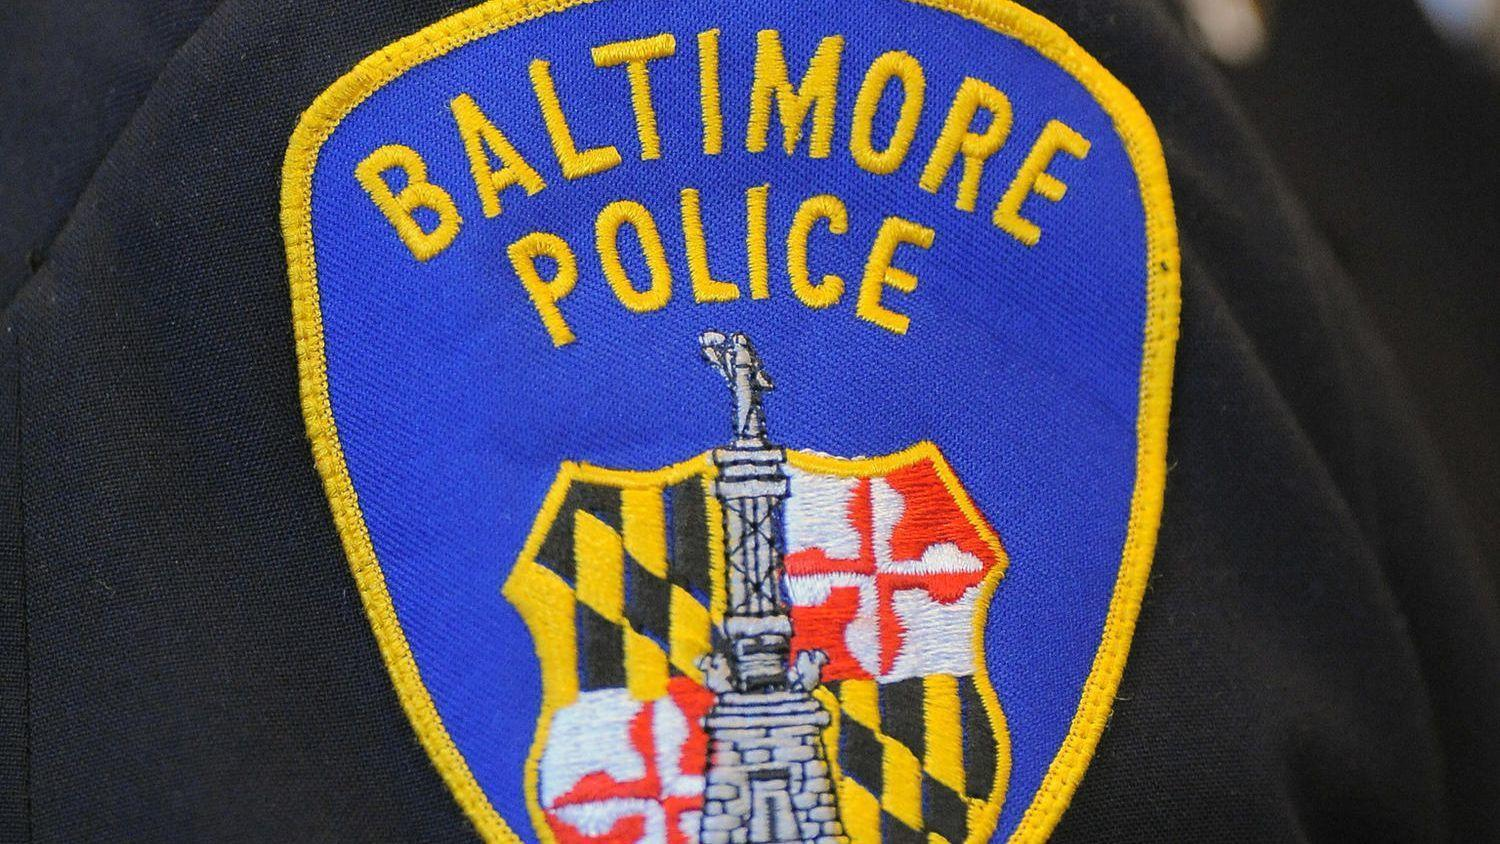 What You Need To Know About The Baltimore Police Consent Decree